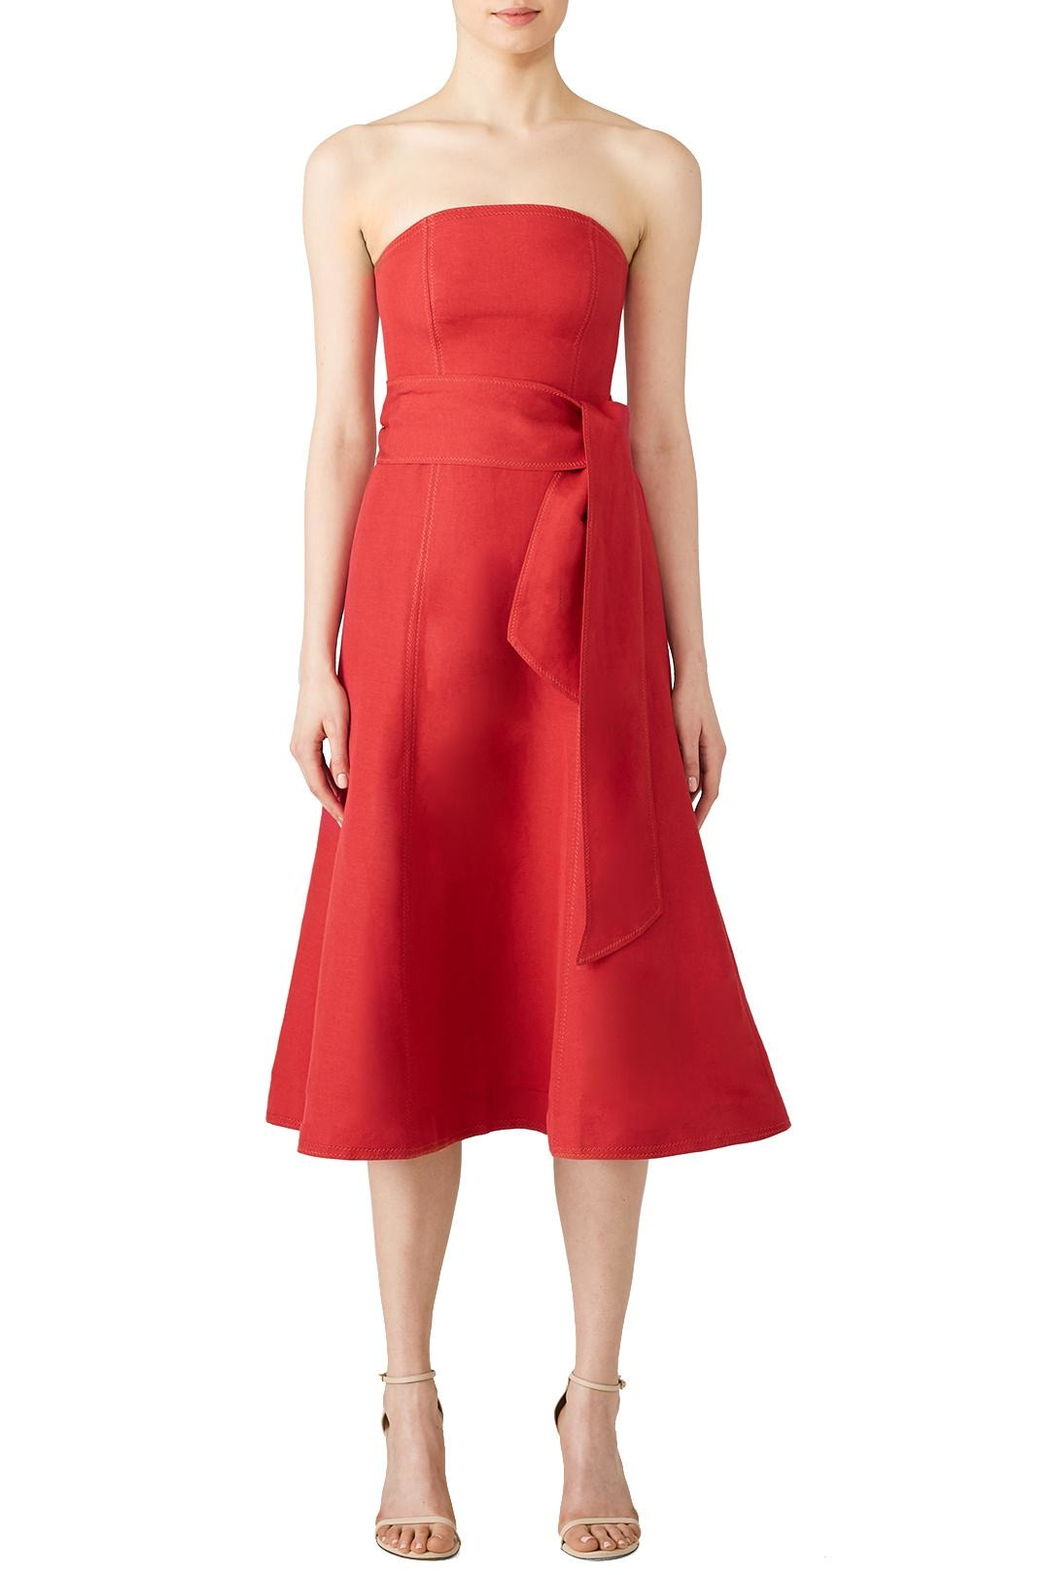 C/MEO COLLECTIVE Red Midi Dress - Front Full Image